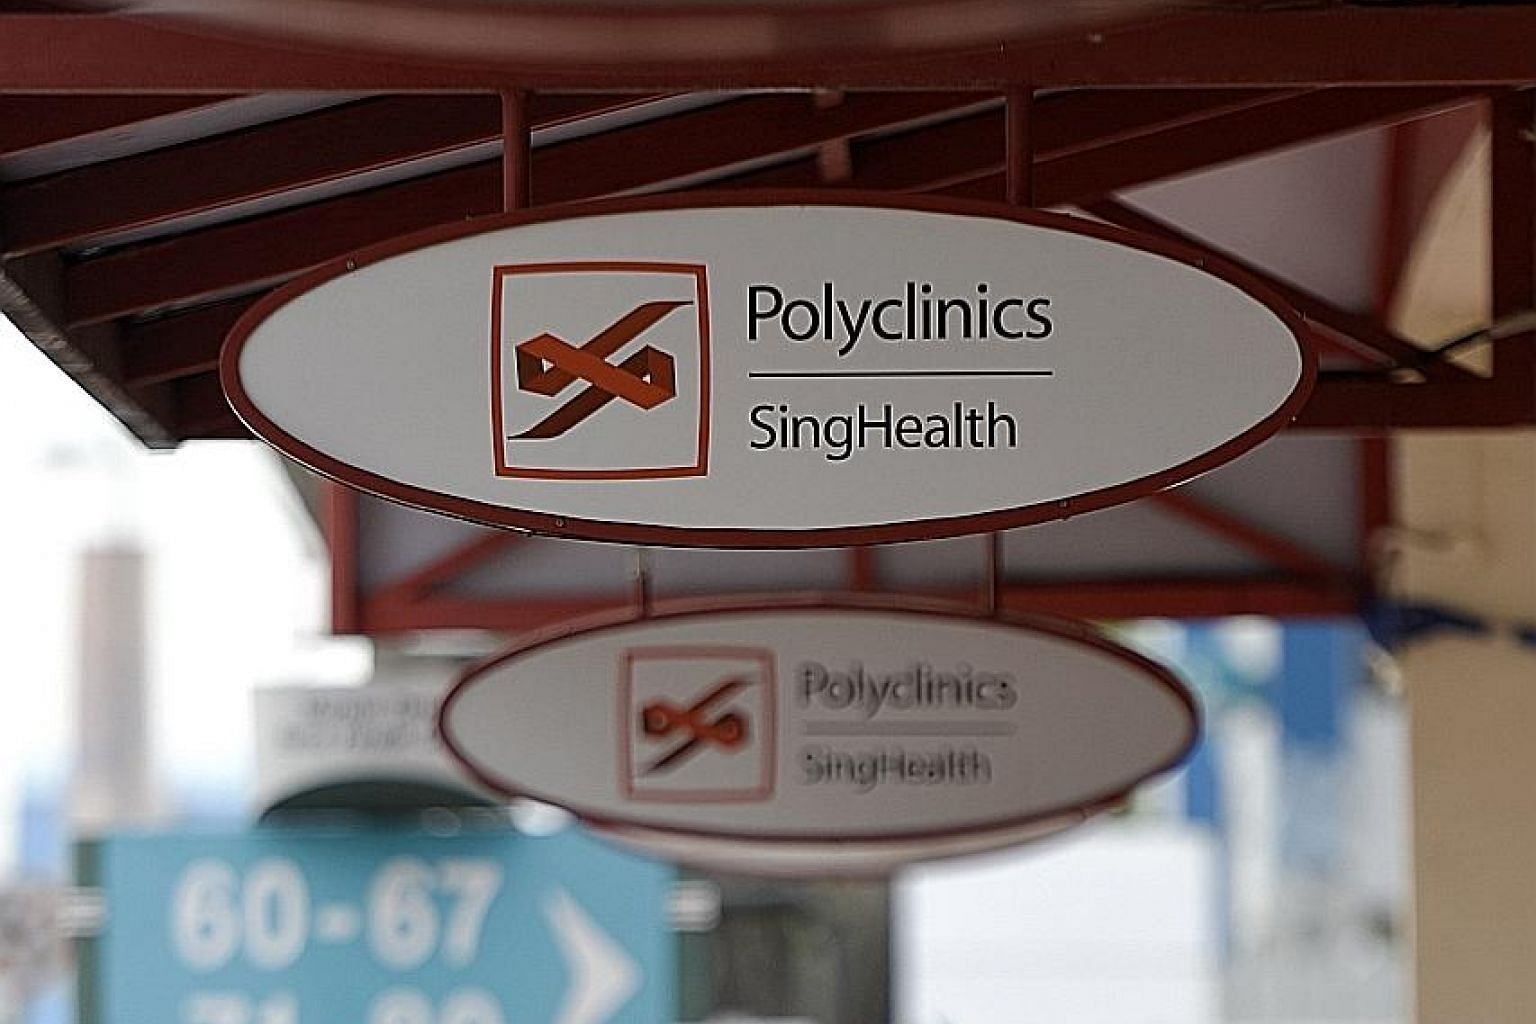 Last year, a cyber attack on SingHealth's database compromised data from 1.5 million patients. This week, the Health Ministry said medical records of 14,200 HIV-positive people had been leaked online.